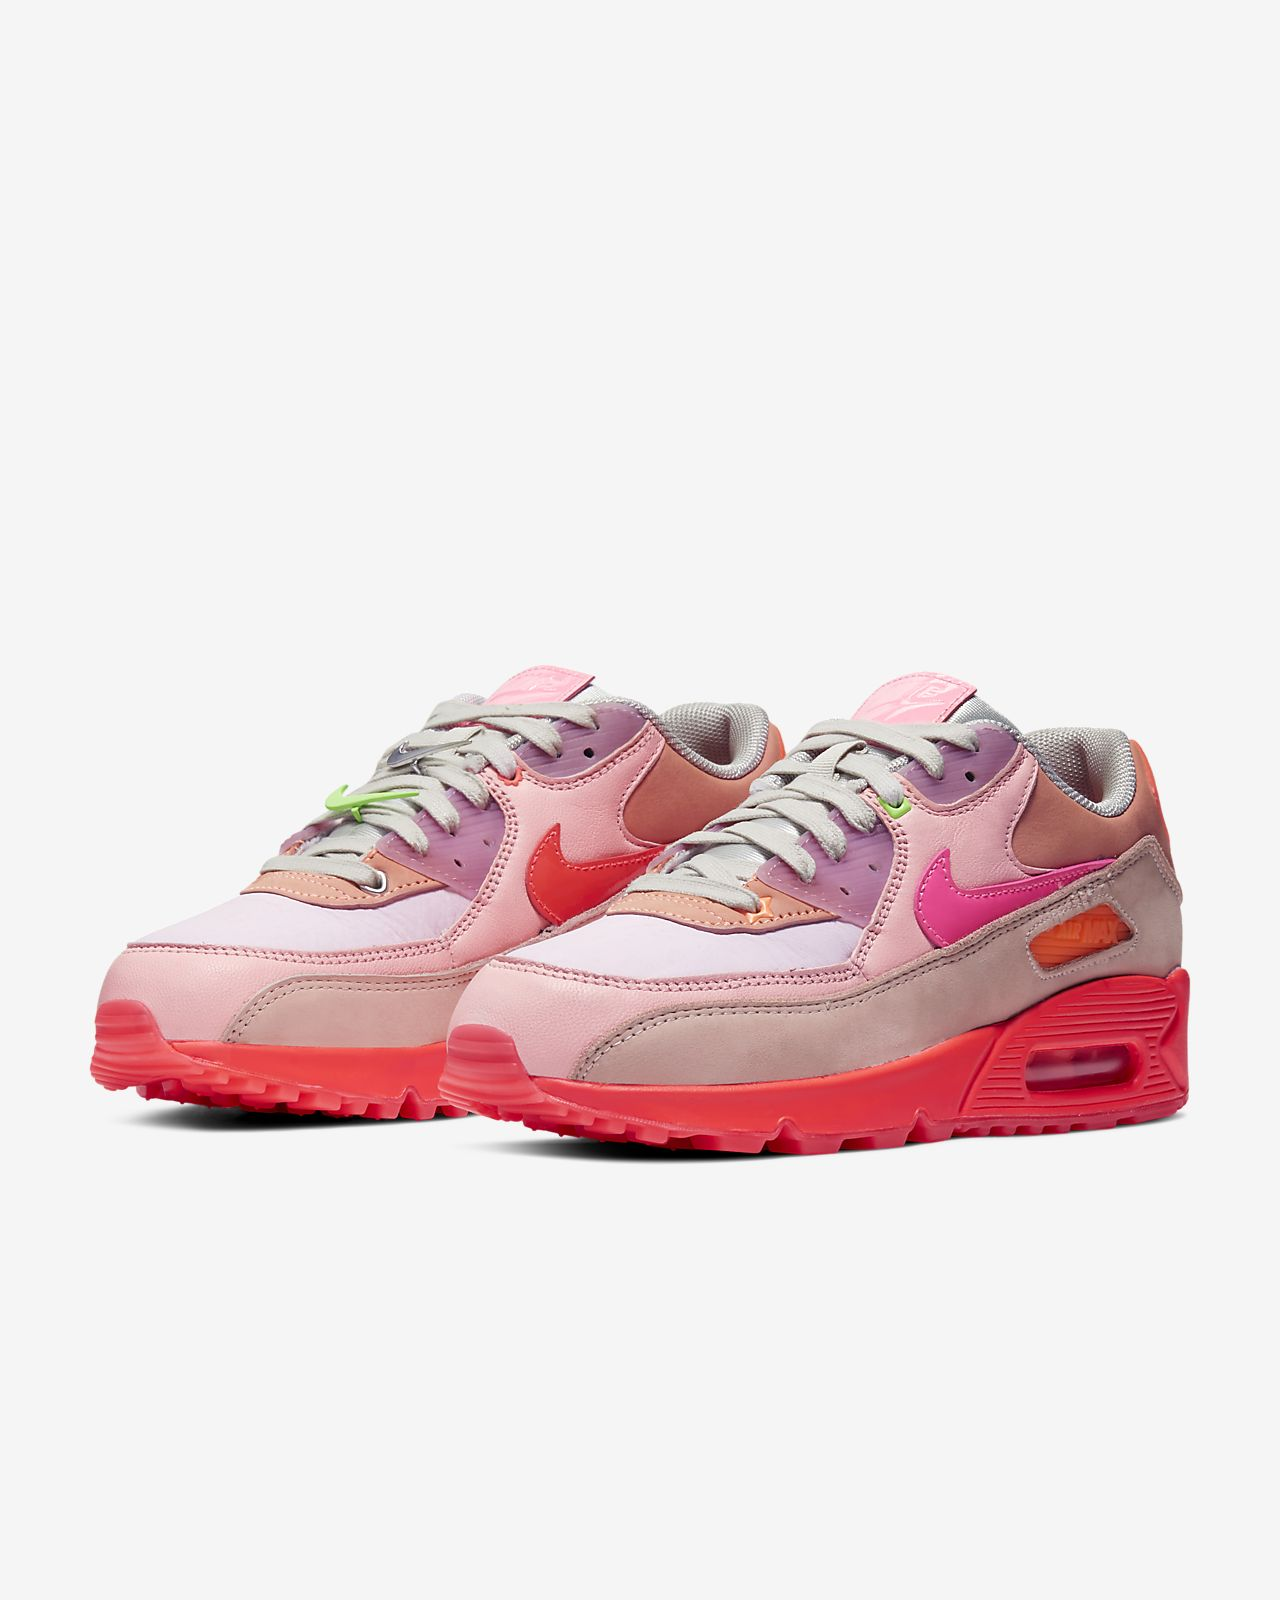 Nike Air Max 90 SE W shoes pink